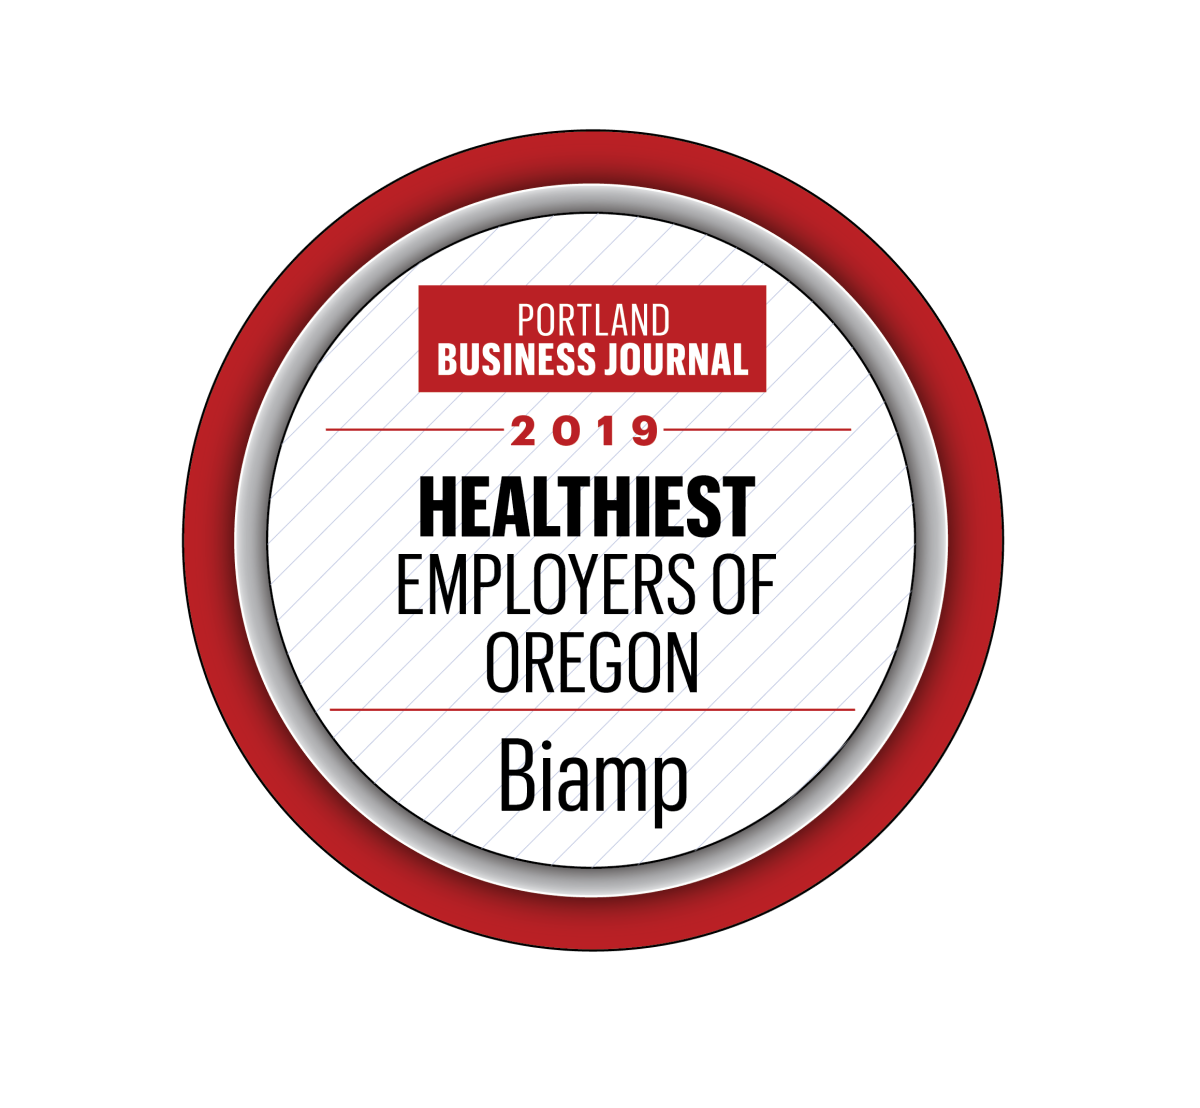 2019 Healthiest Employer PDX Biz Journal